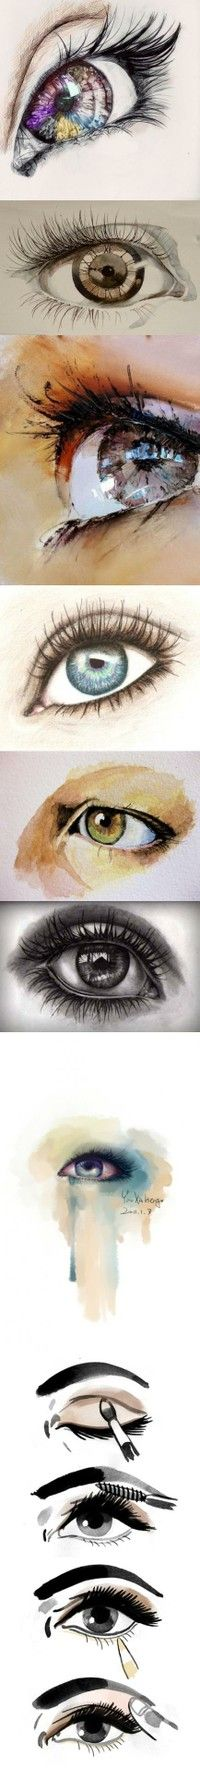 i absolutely love drawings && pictures of eyes. <3